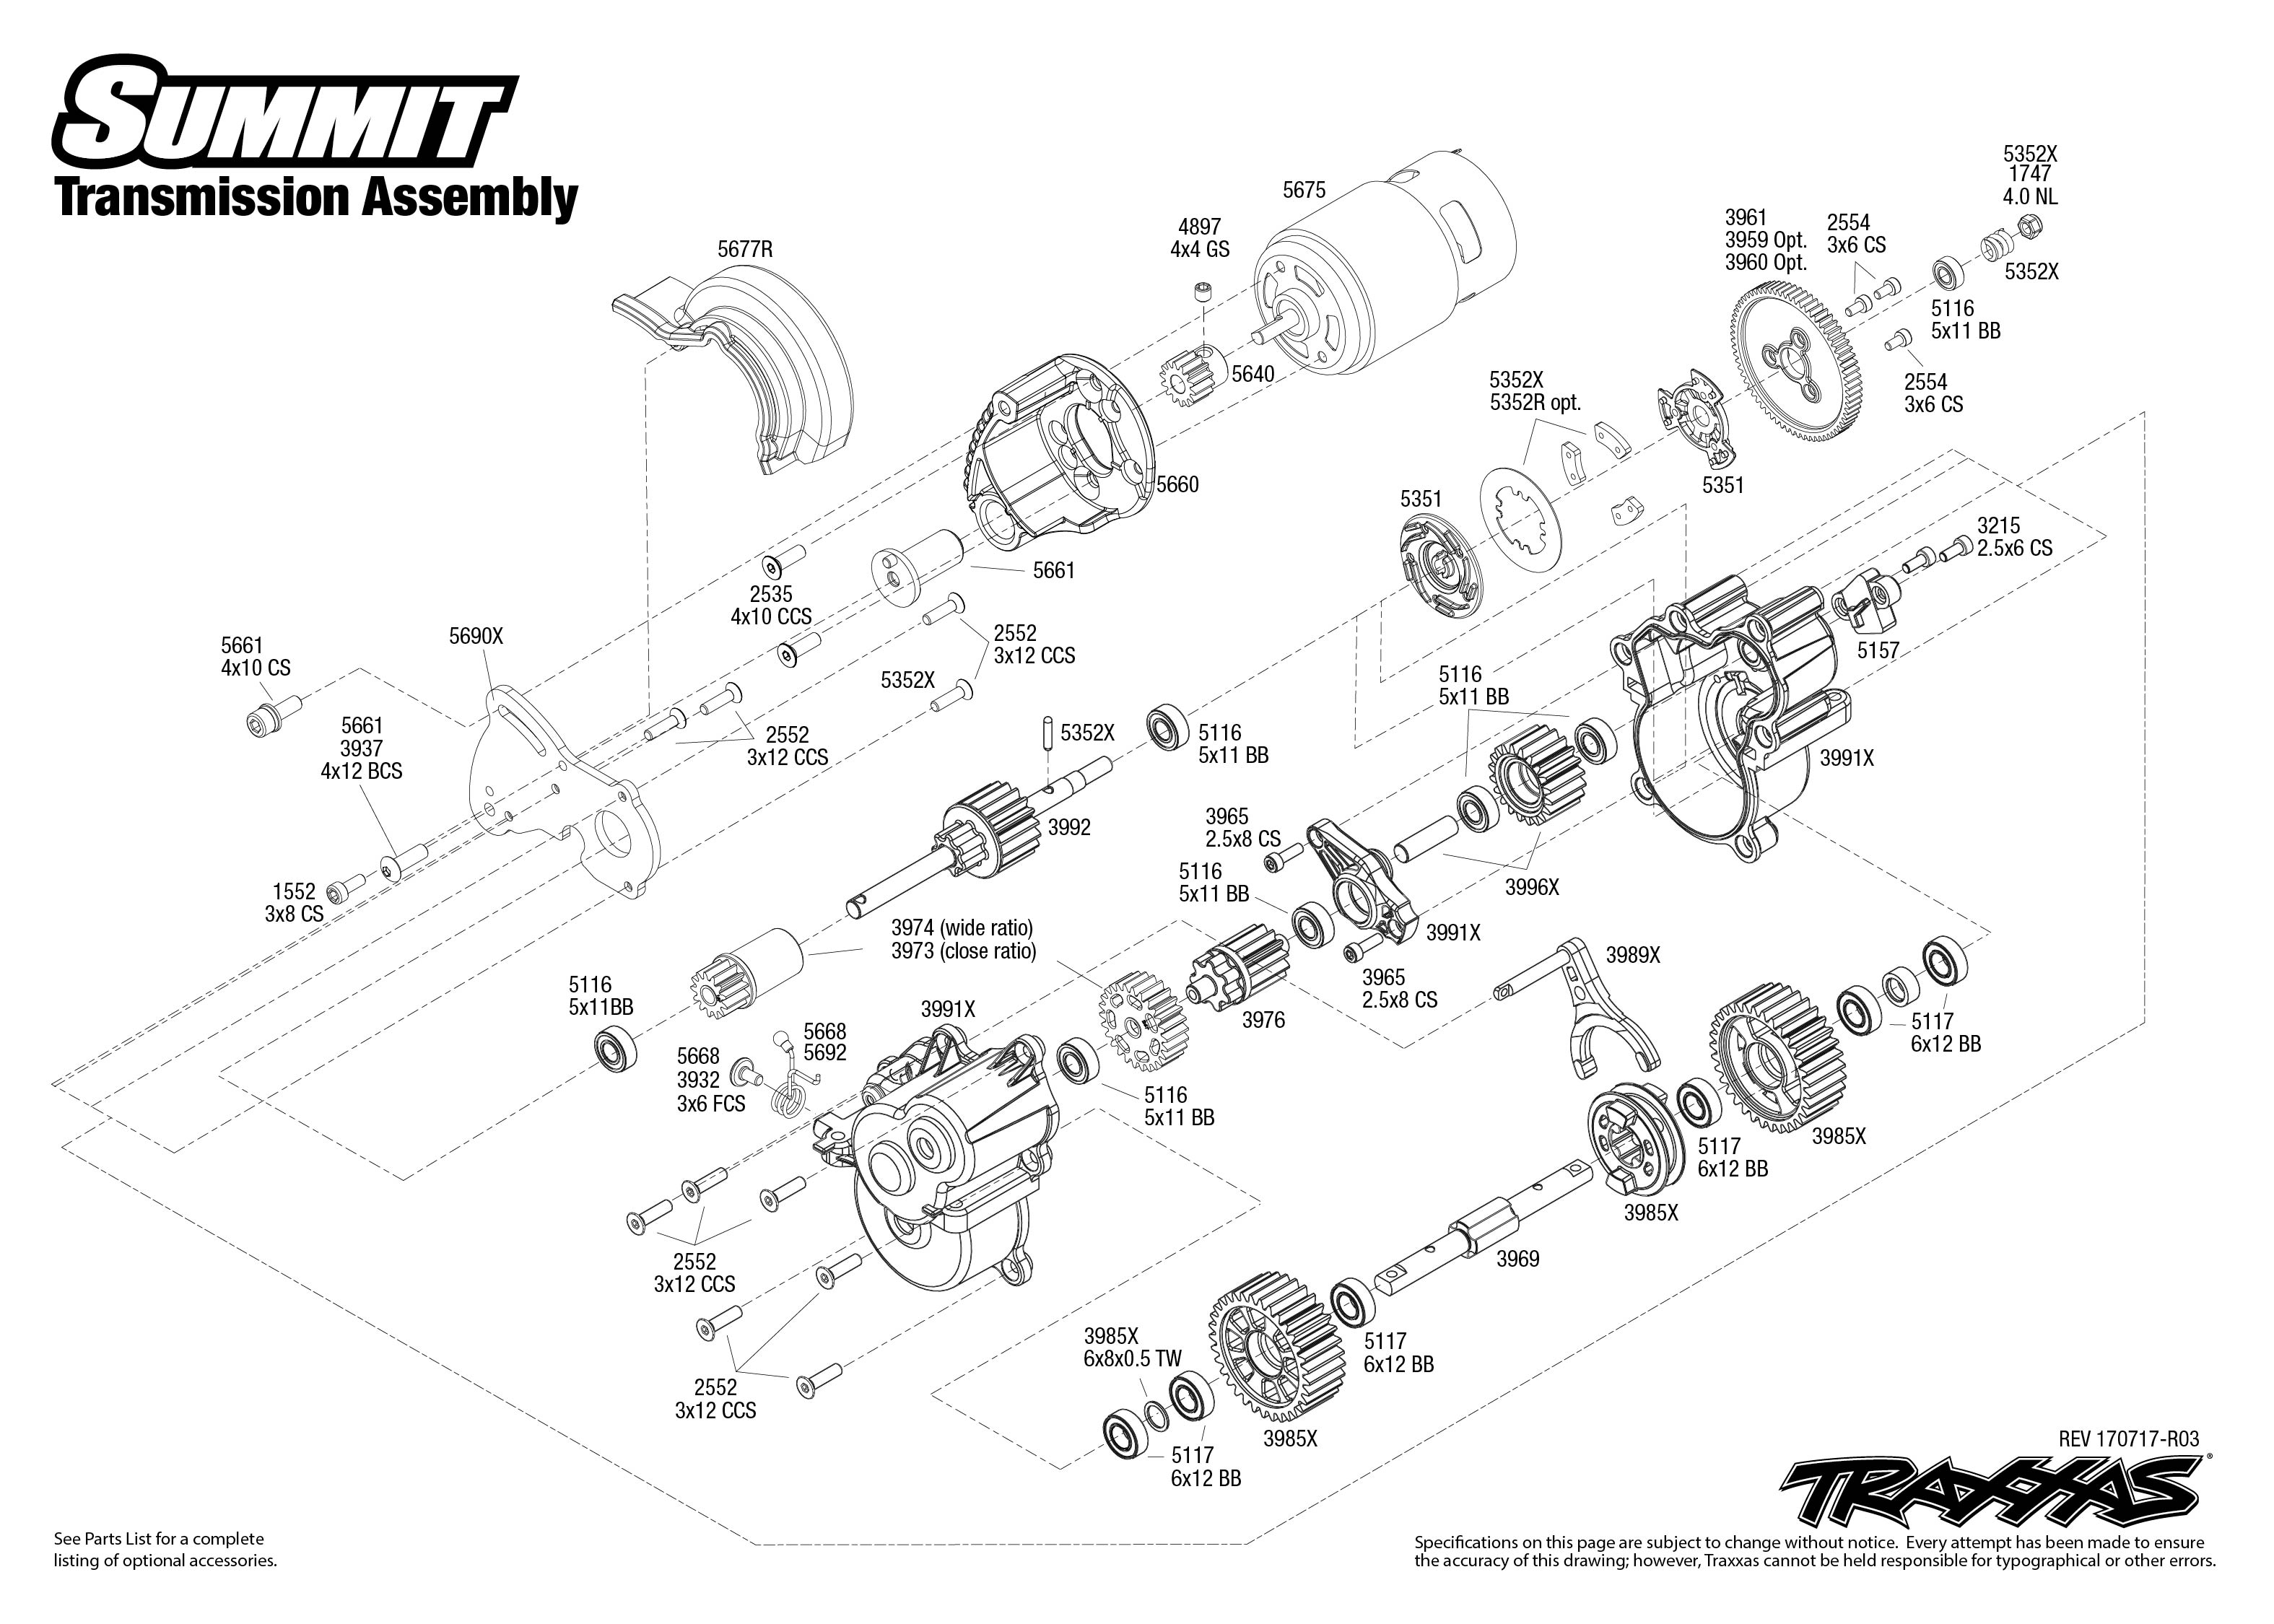 Summit 1 Transmission Assembly Exploded View